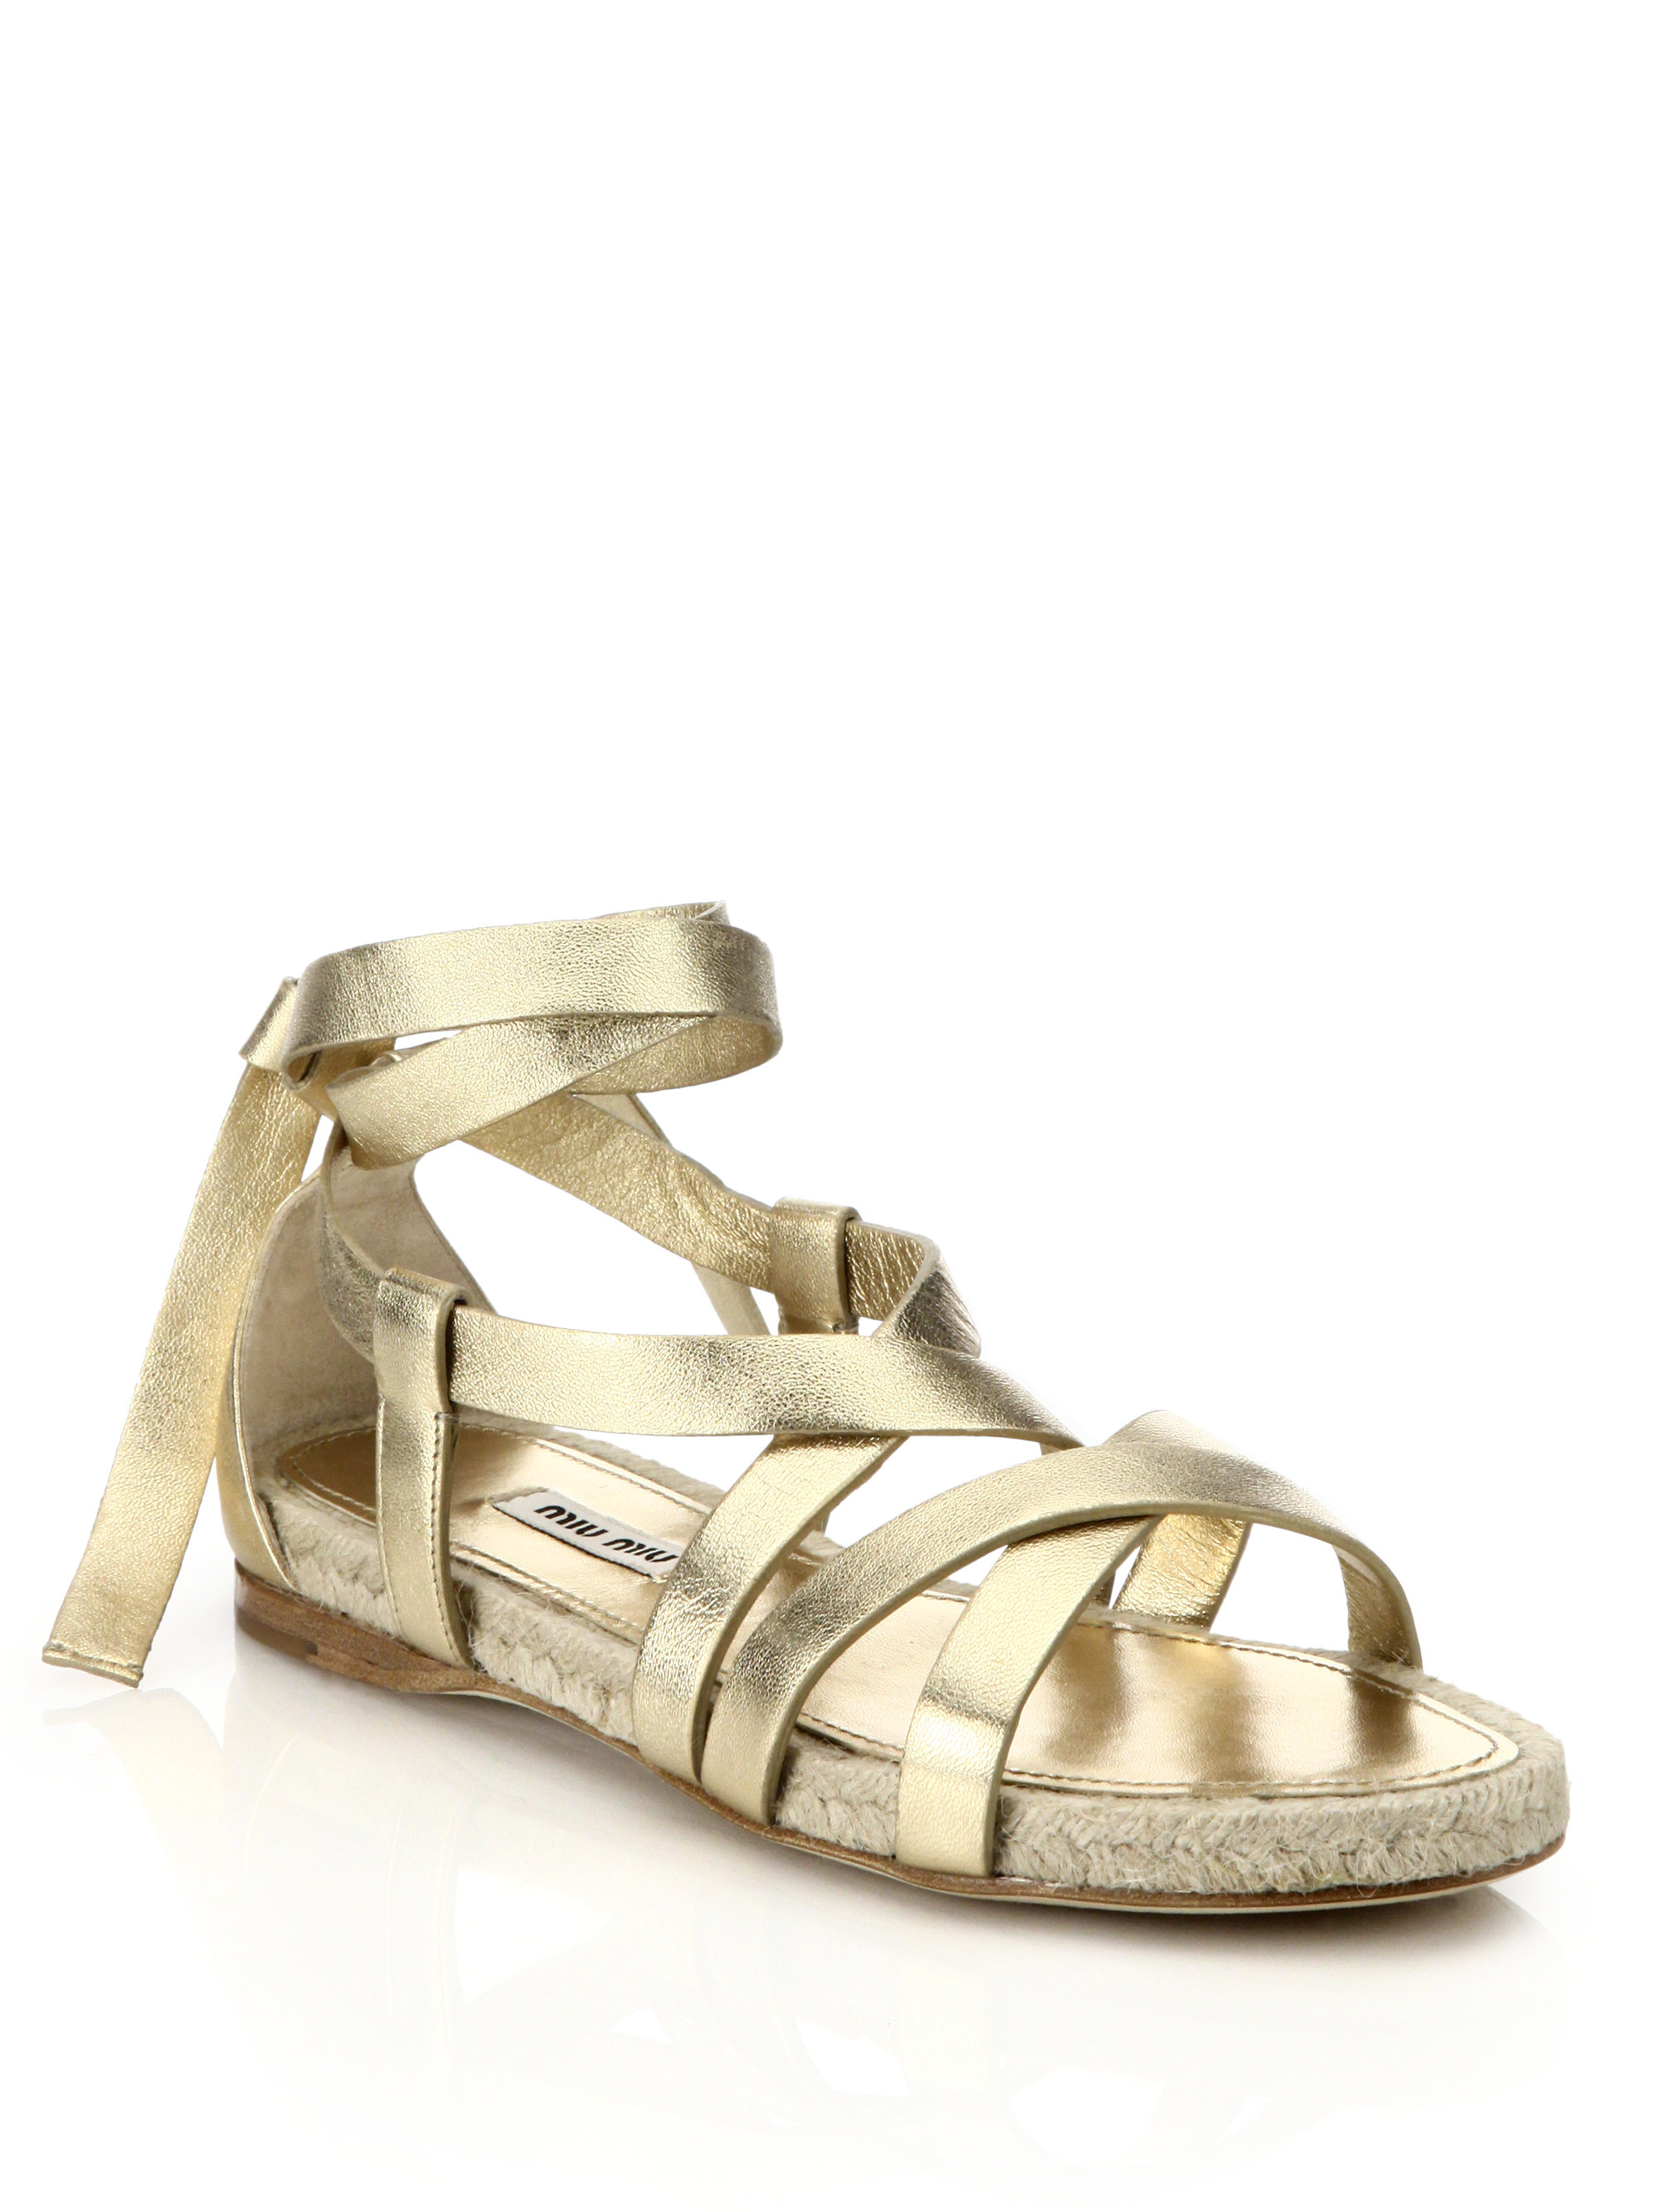 021fb76d1ce Lyst - Miu Miu Metallic Leather Ankle-tie Espadrille Sandals in Metallic